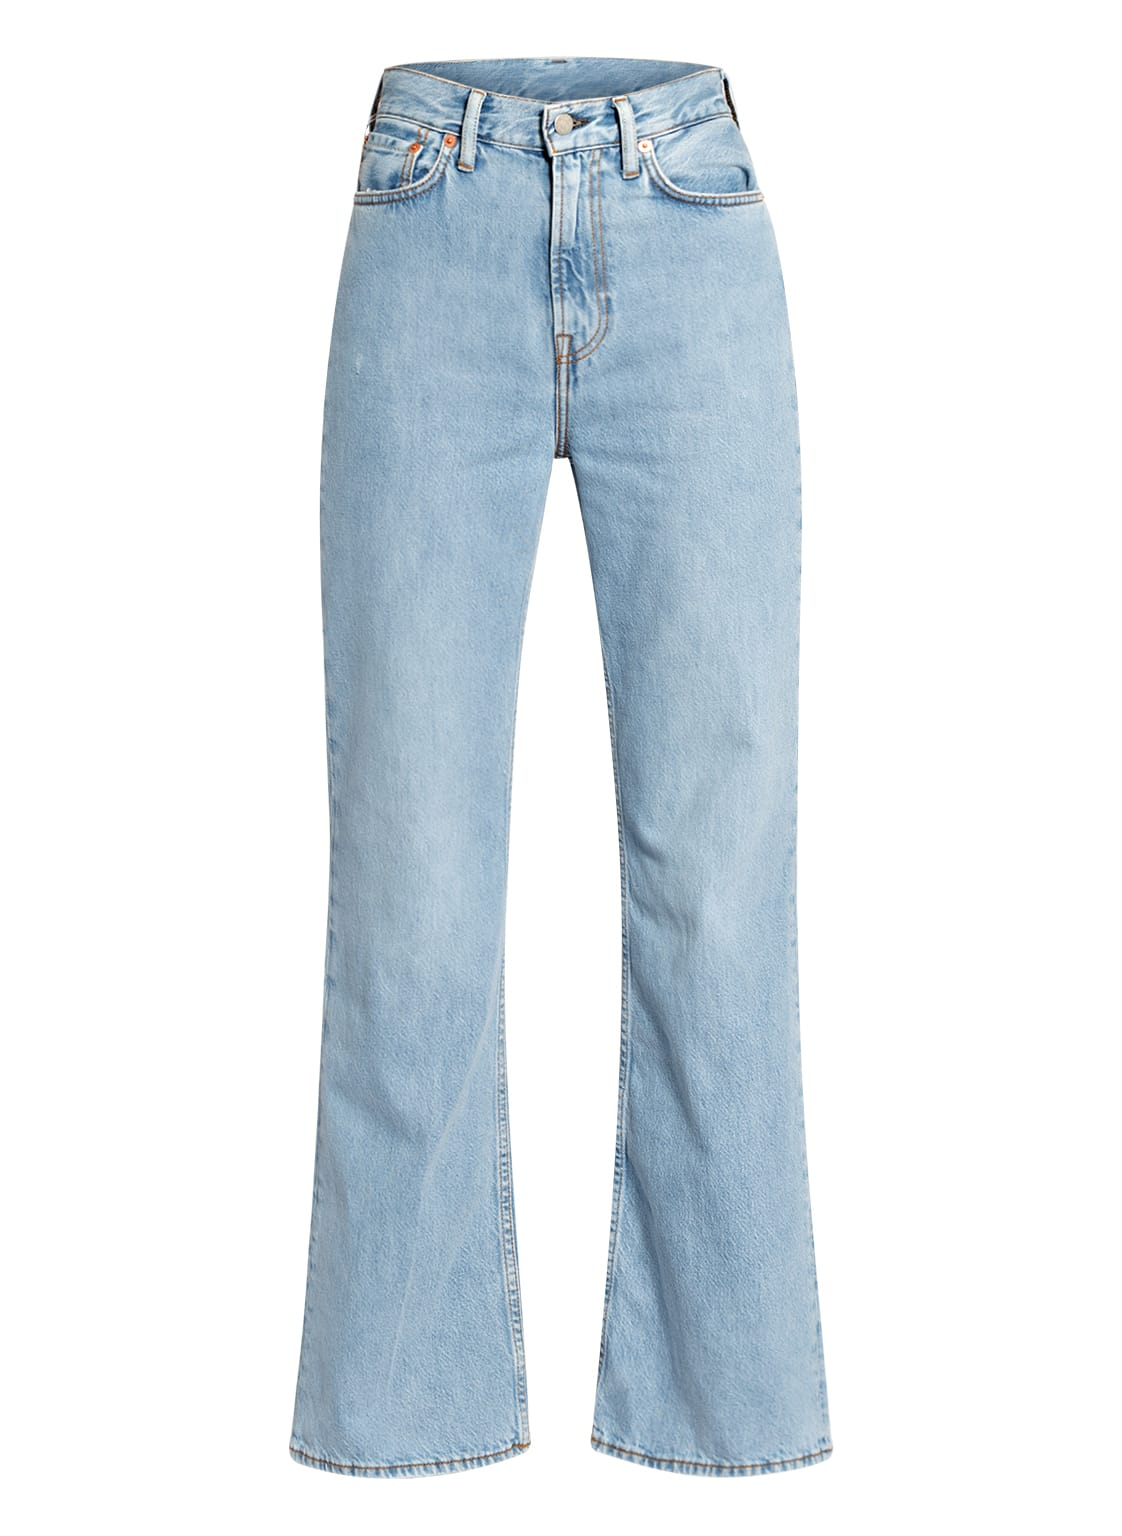 Image of Acne Studios Flared Jeans blau